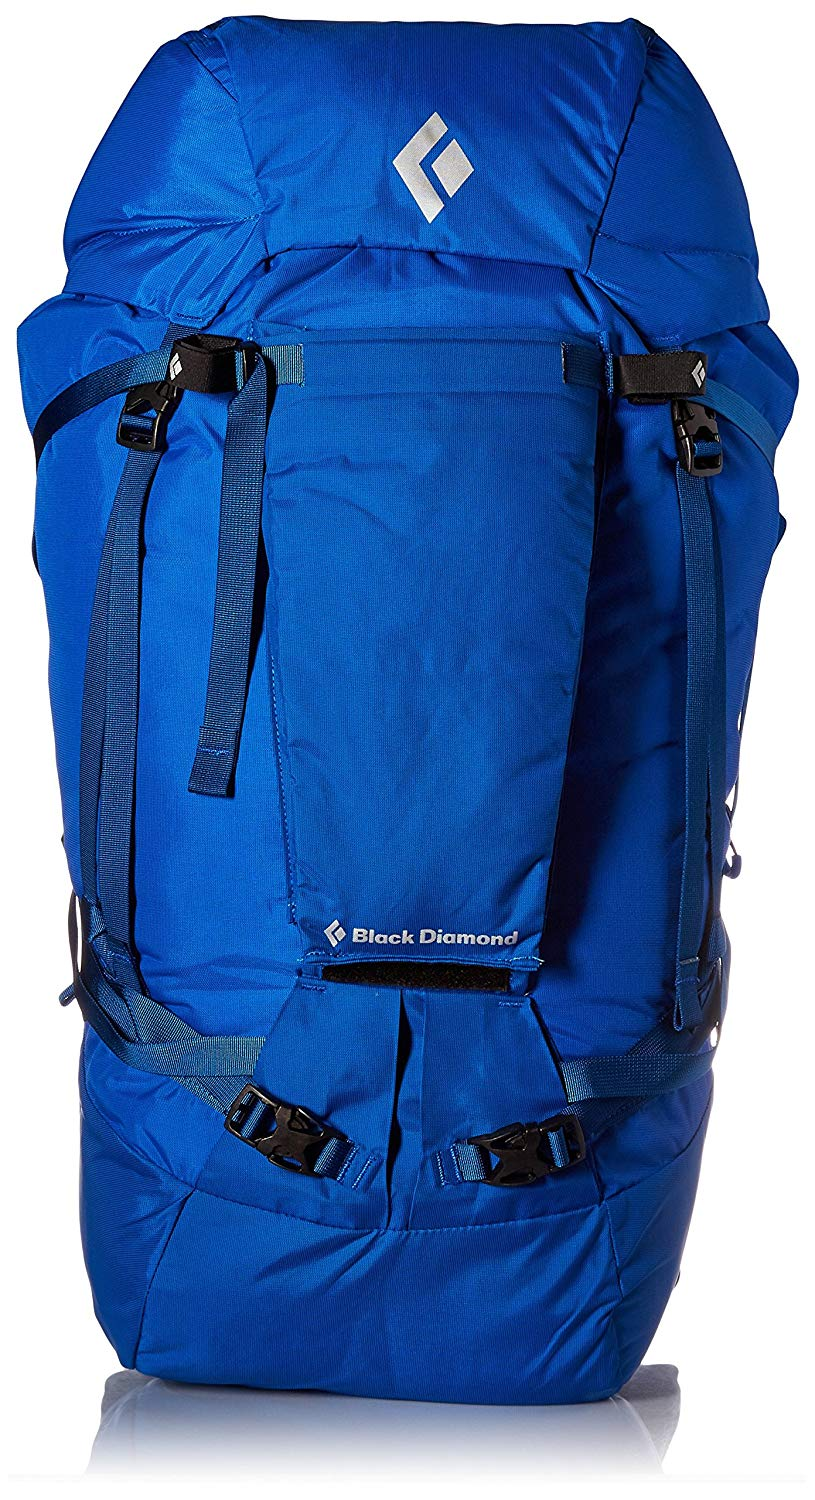 Black Diamond Mission 75 Allround Bergsteigerrucksack.